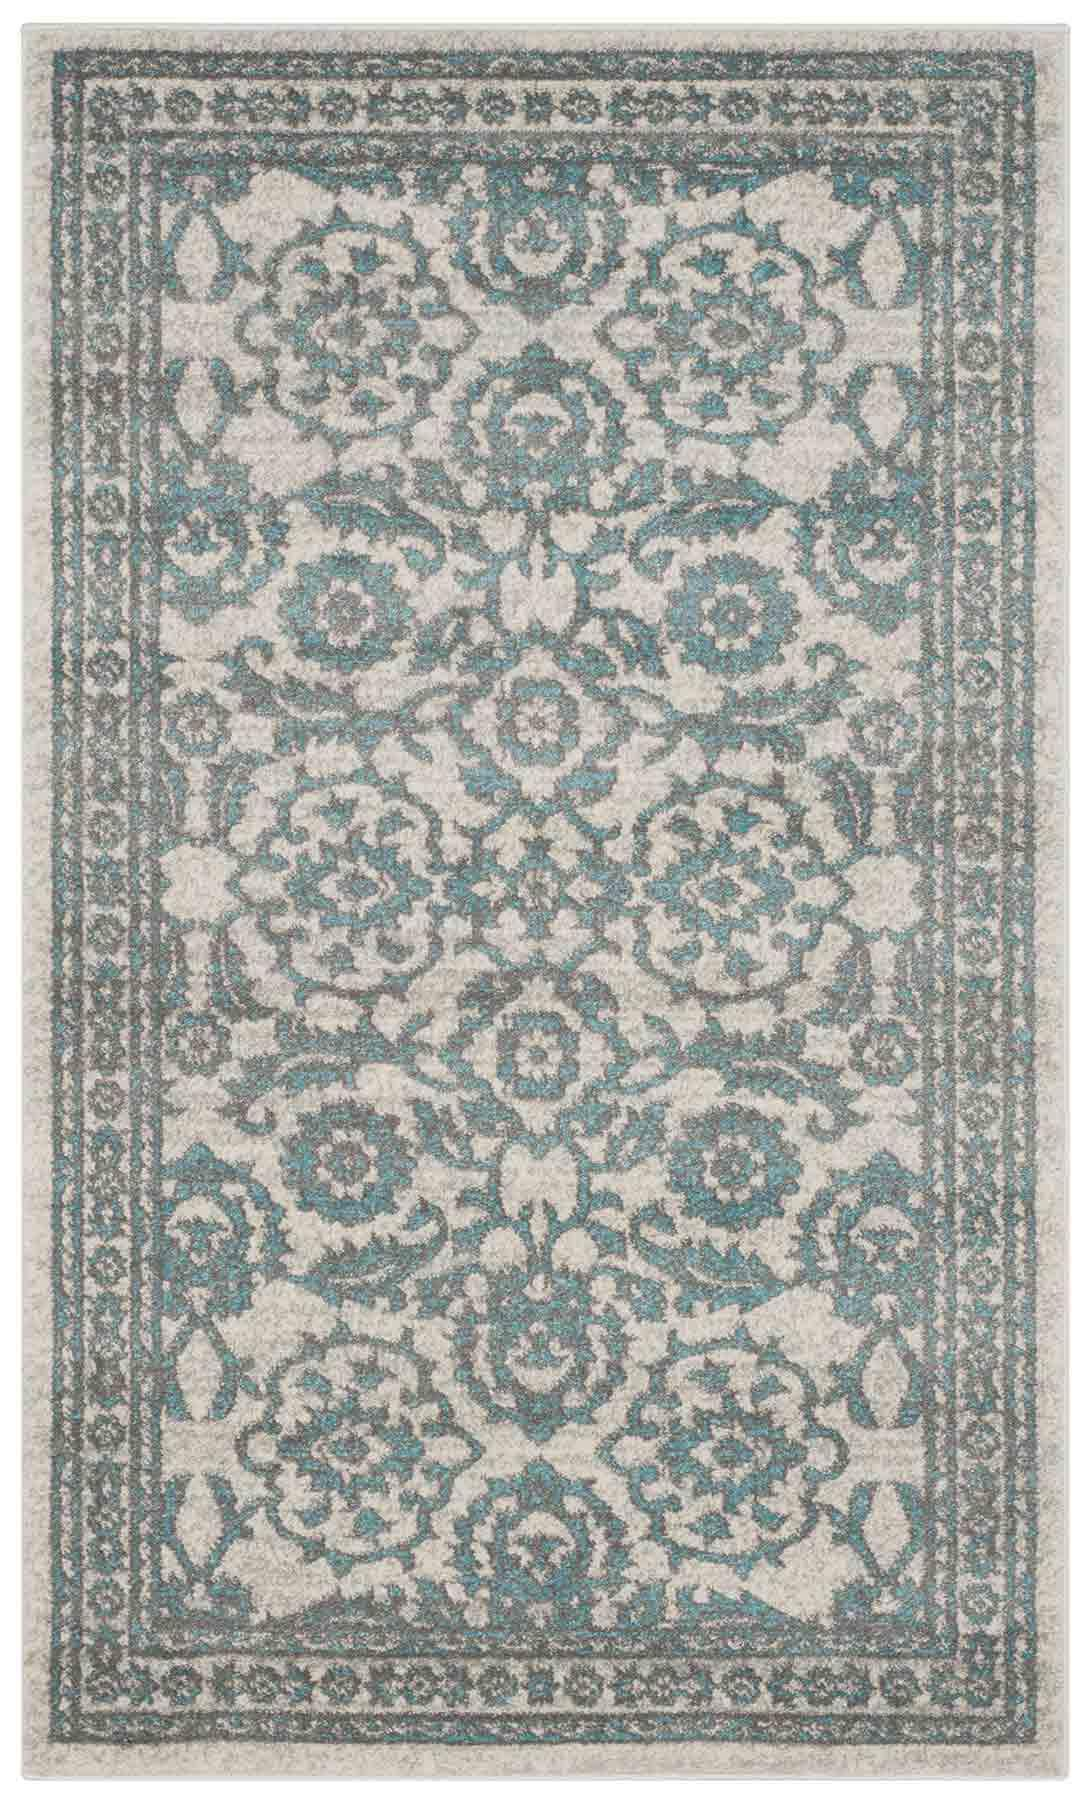 Rug Evk216d Evoke Area Rugs By Safavieh